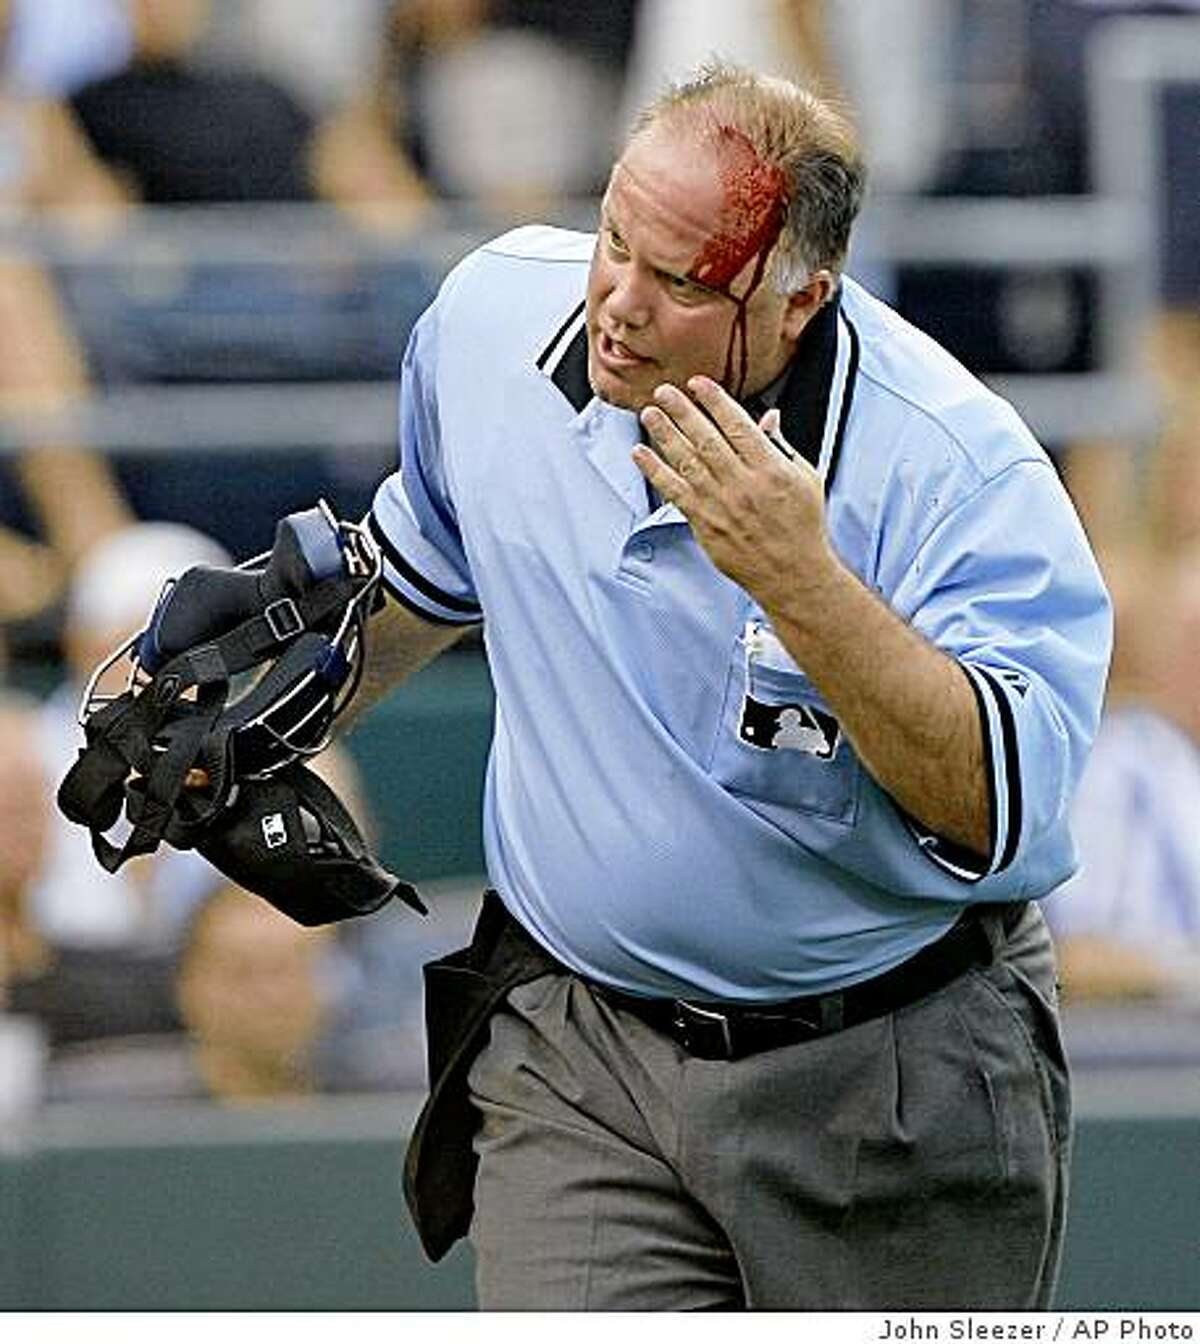 Home plate umpire Brian O'Nora runs toward the Kansas City Royals' dugout after a broken bat from Royals' Miguel Olivo struck him in the head in the second inning on Kansas City's baseball game against the Colorado Rockies on Tuesday, June 24, 2008, in Kansas City, Mo. O'Nora left the game. (AP Photo/The Kansas City Star, John Sleezer) ** MAGS OUT NO SALES **